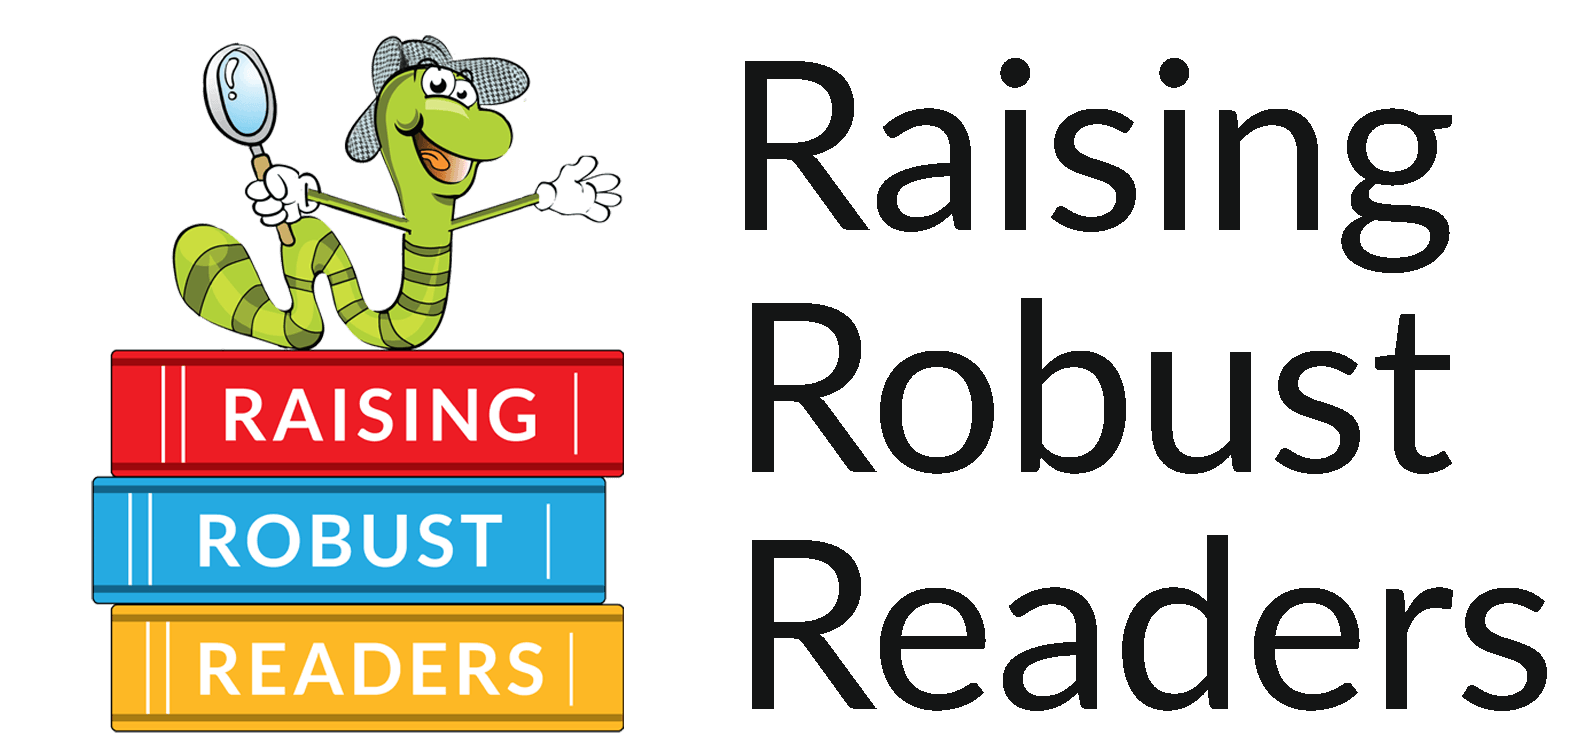 Raising Robust Readers